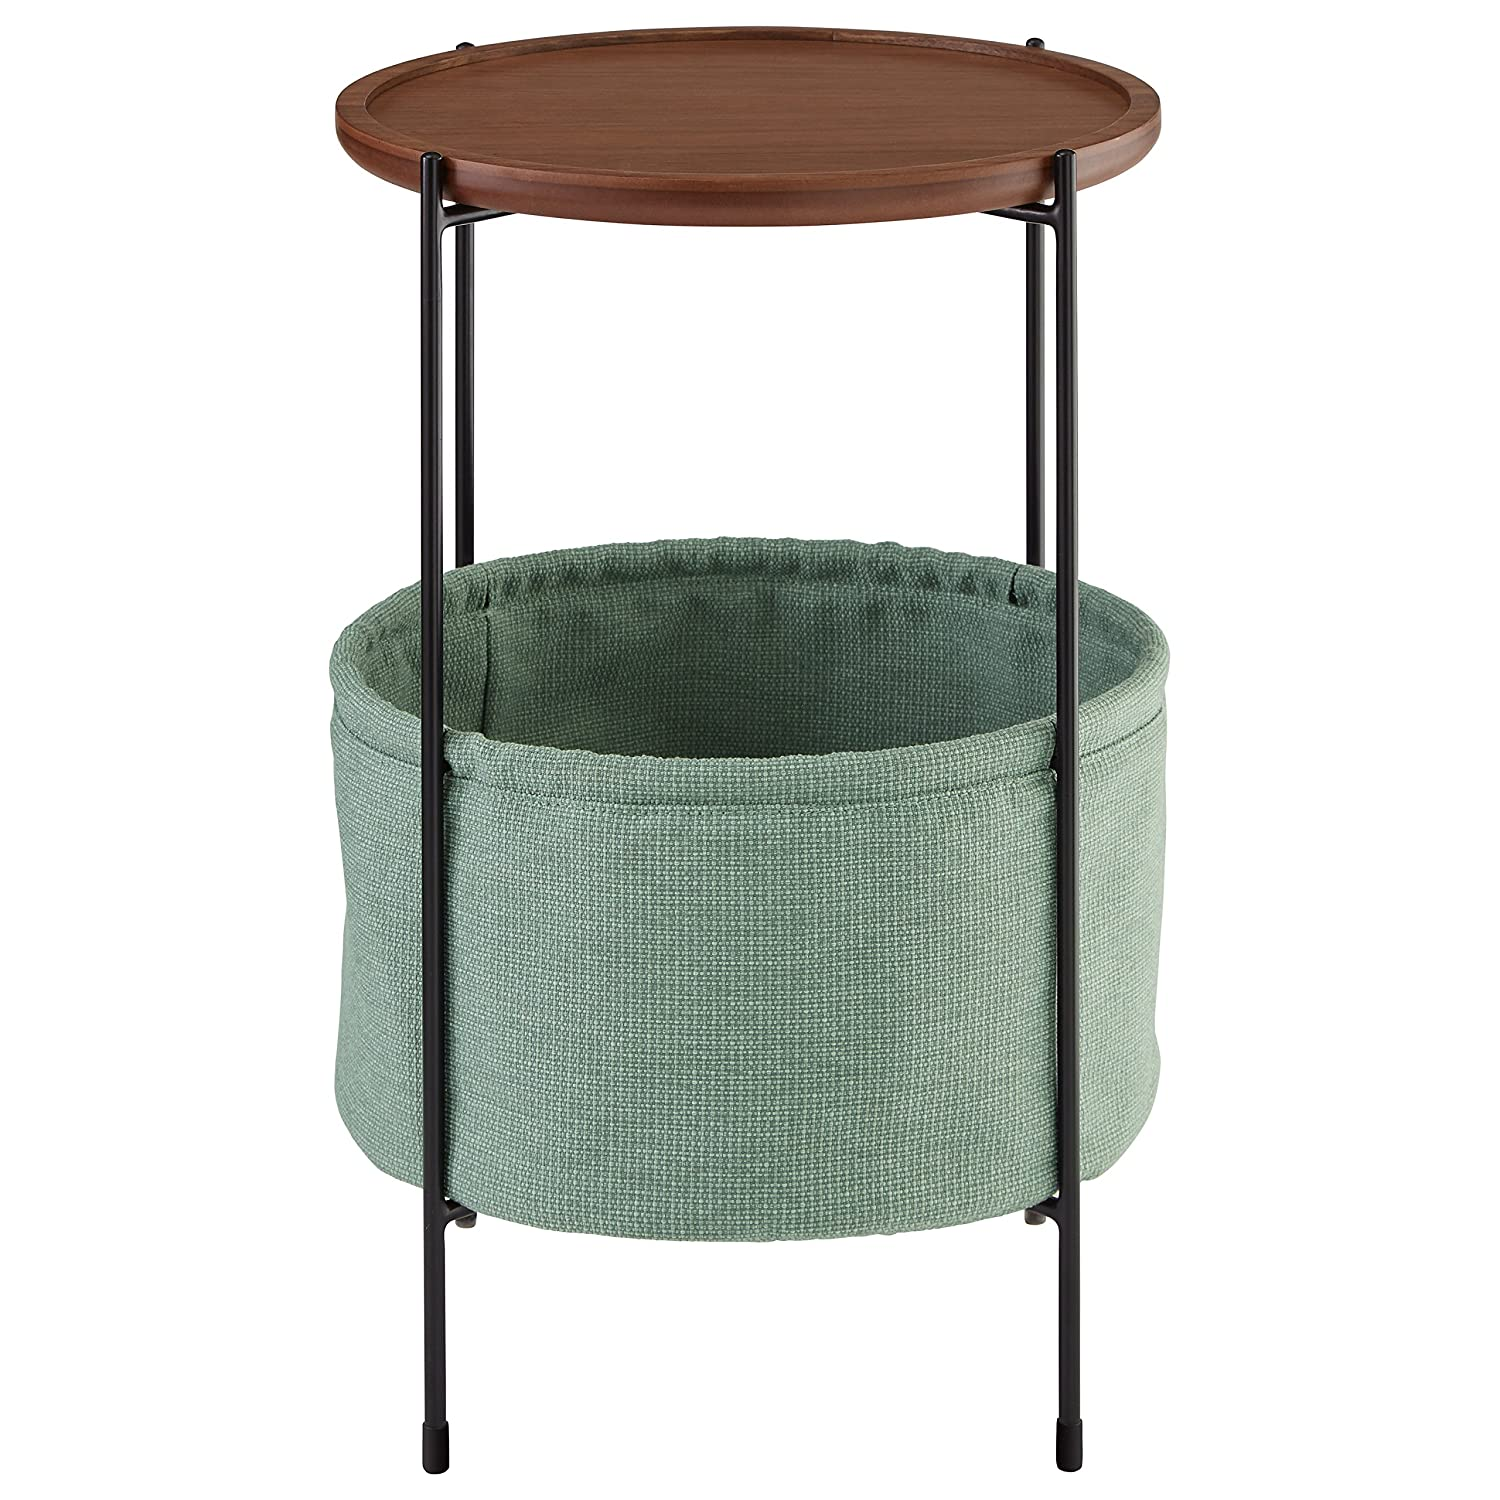 Amazon com rivet meeks round storage basket side table walnut and teal fabric kitchen dining